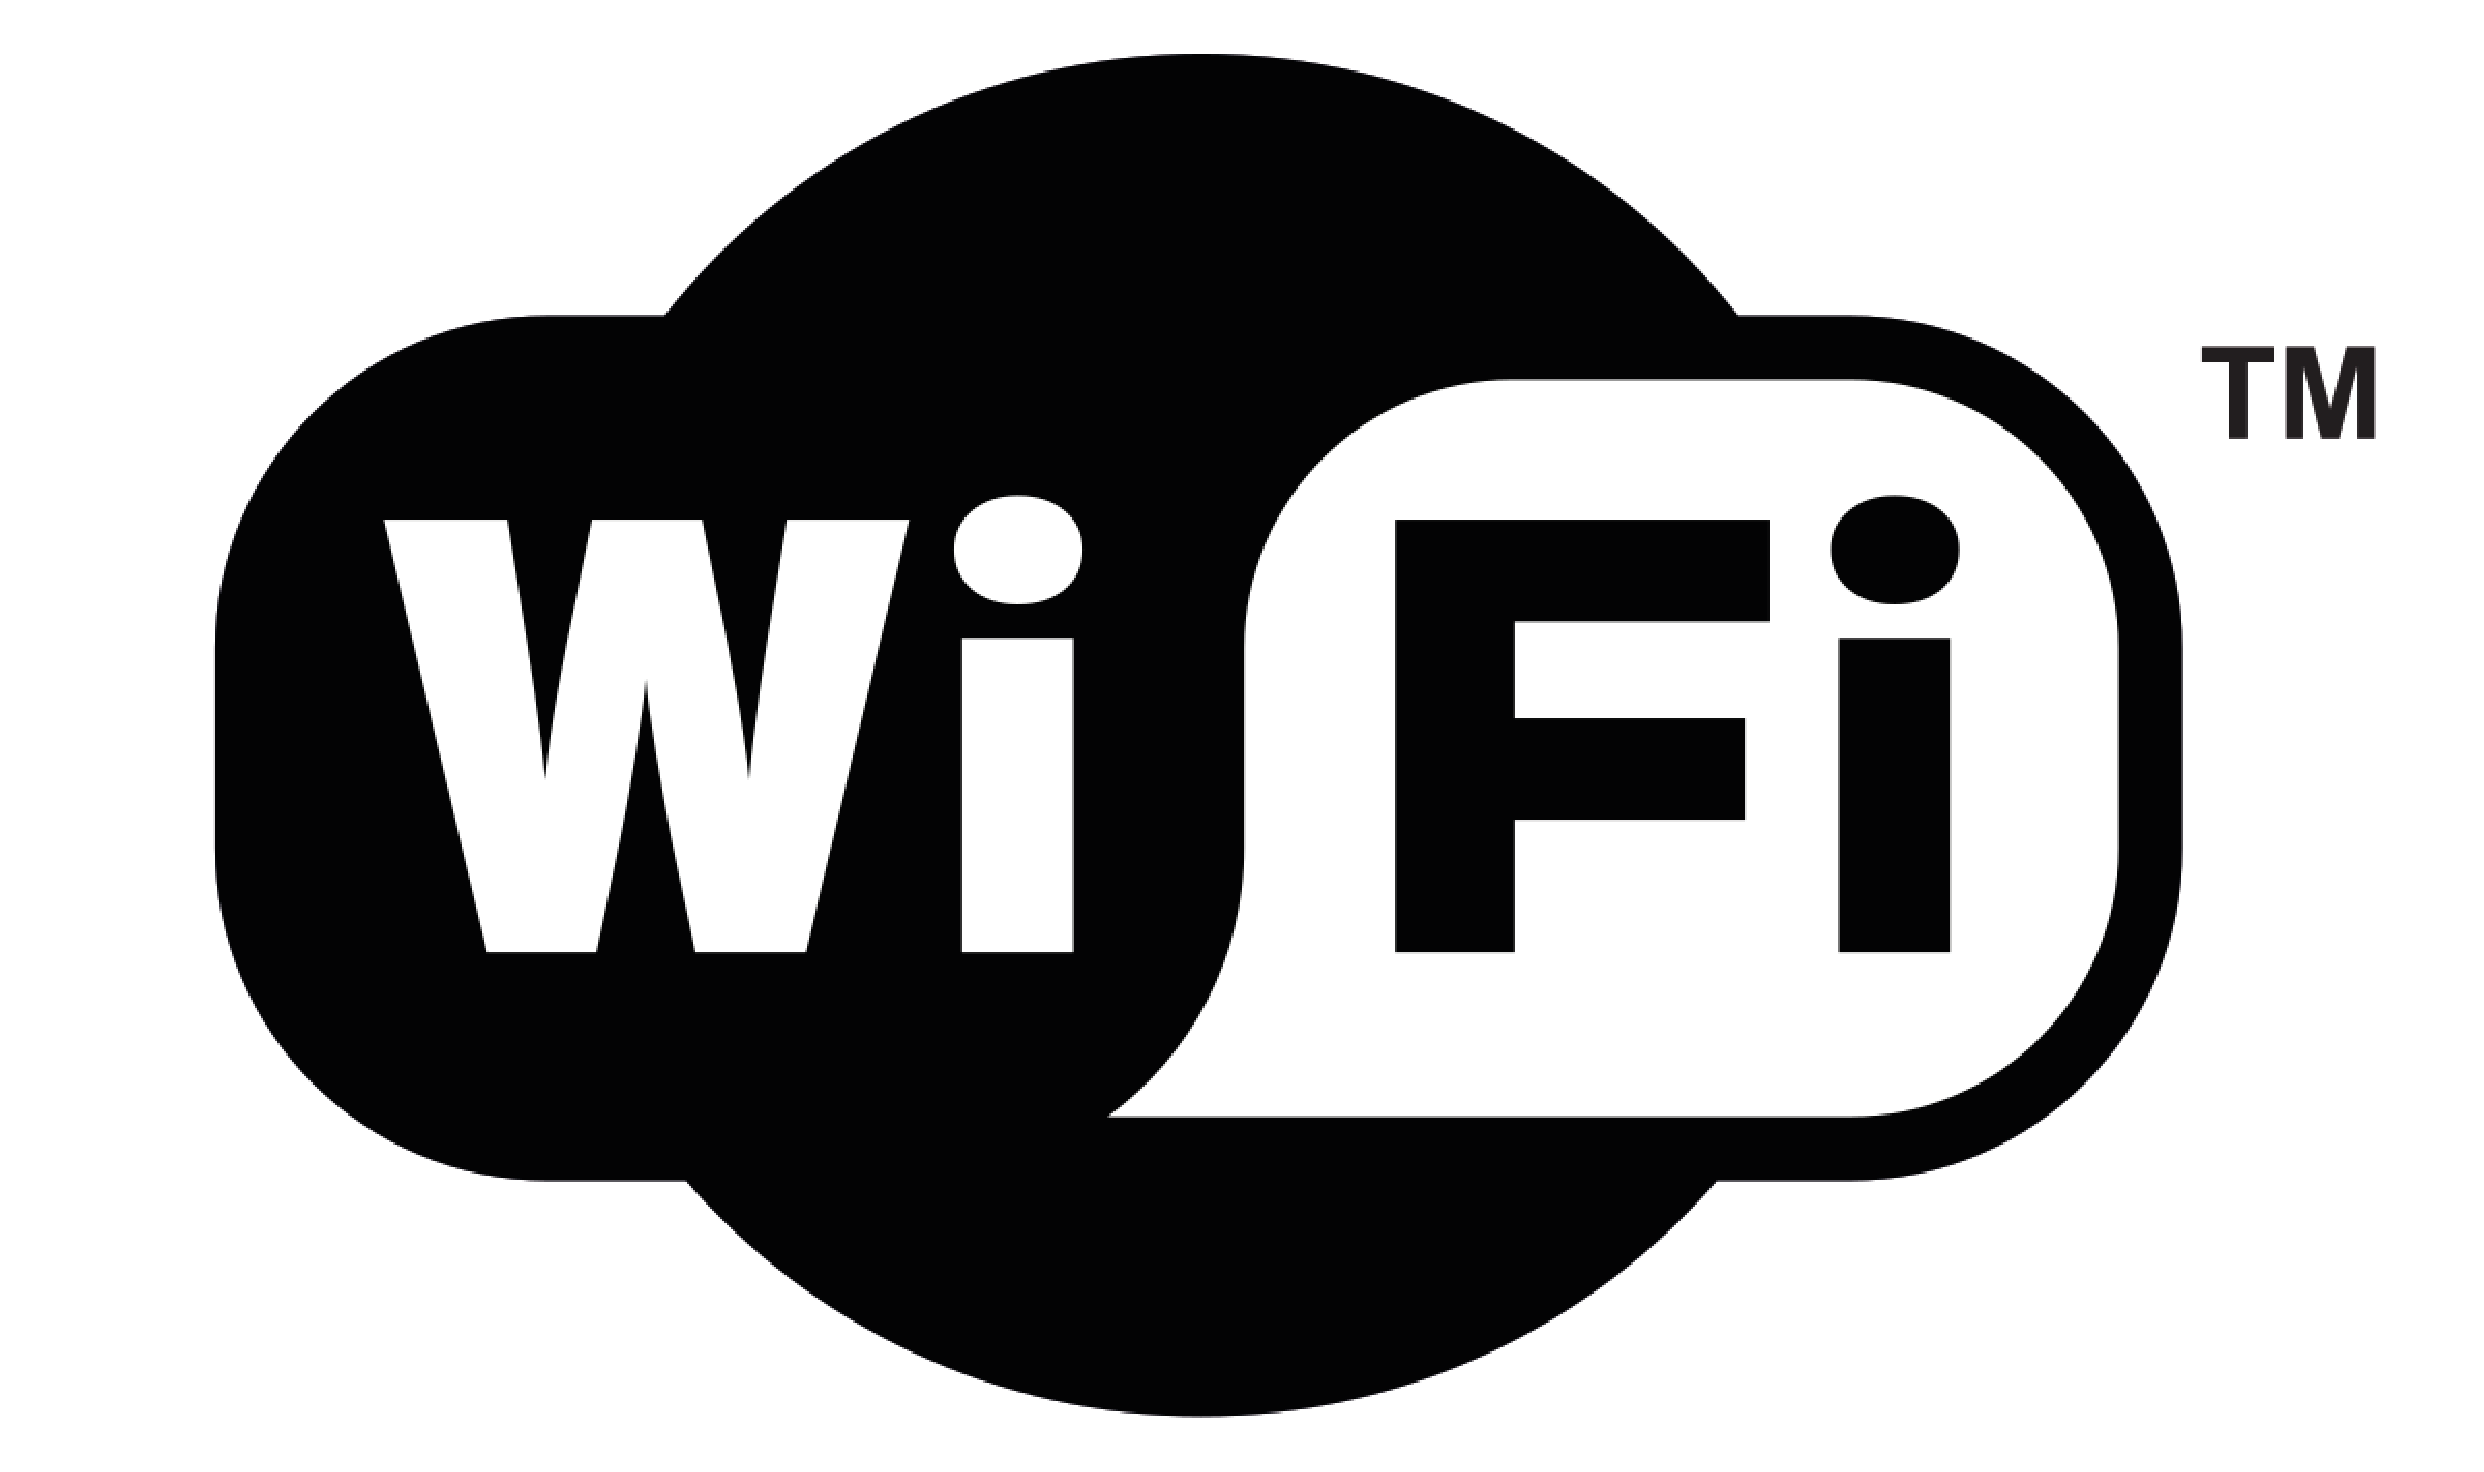 WiFi symbol labels